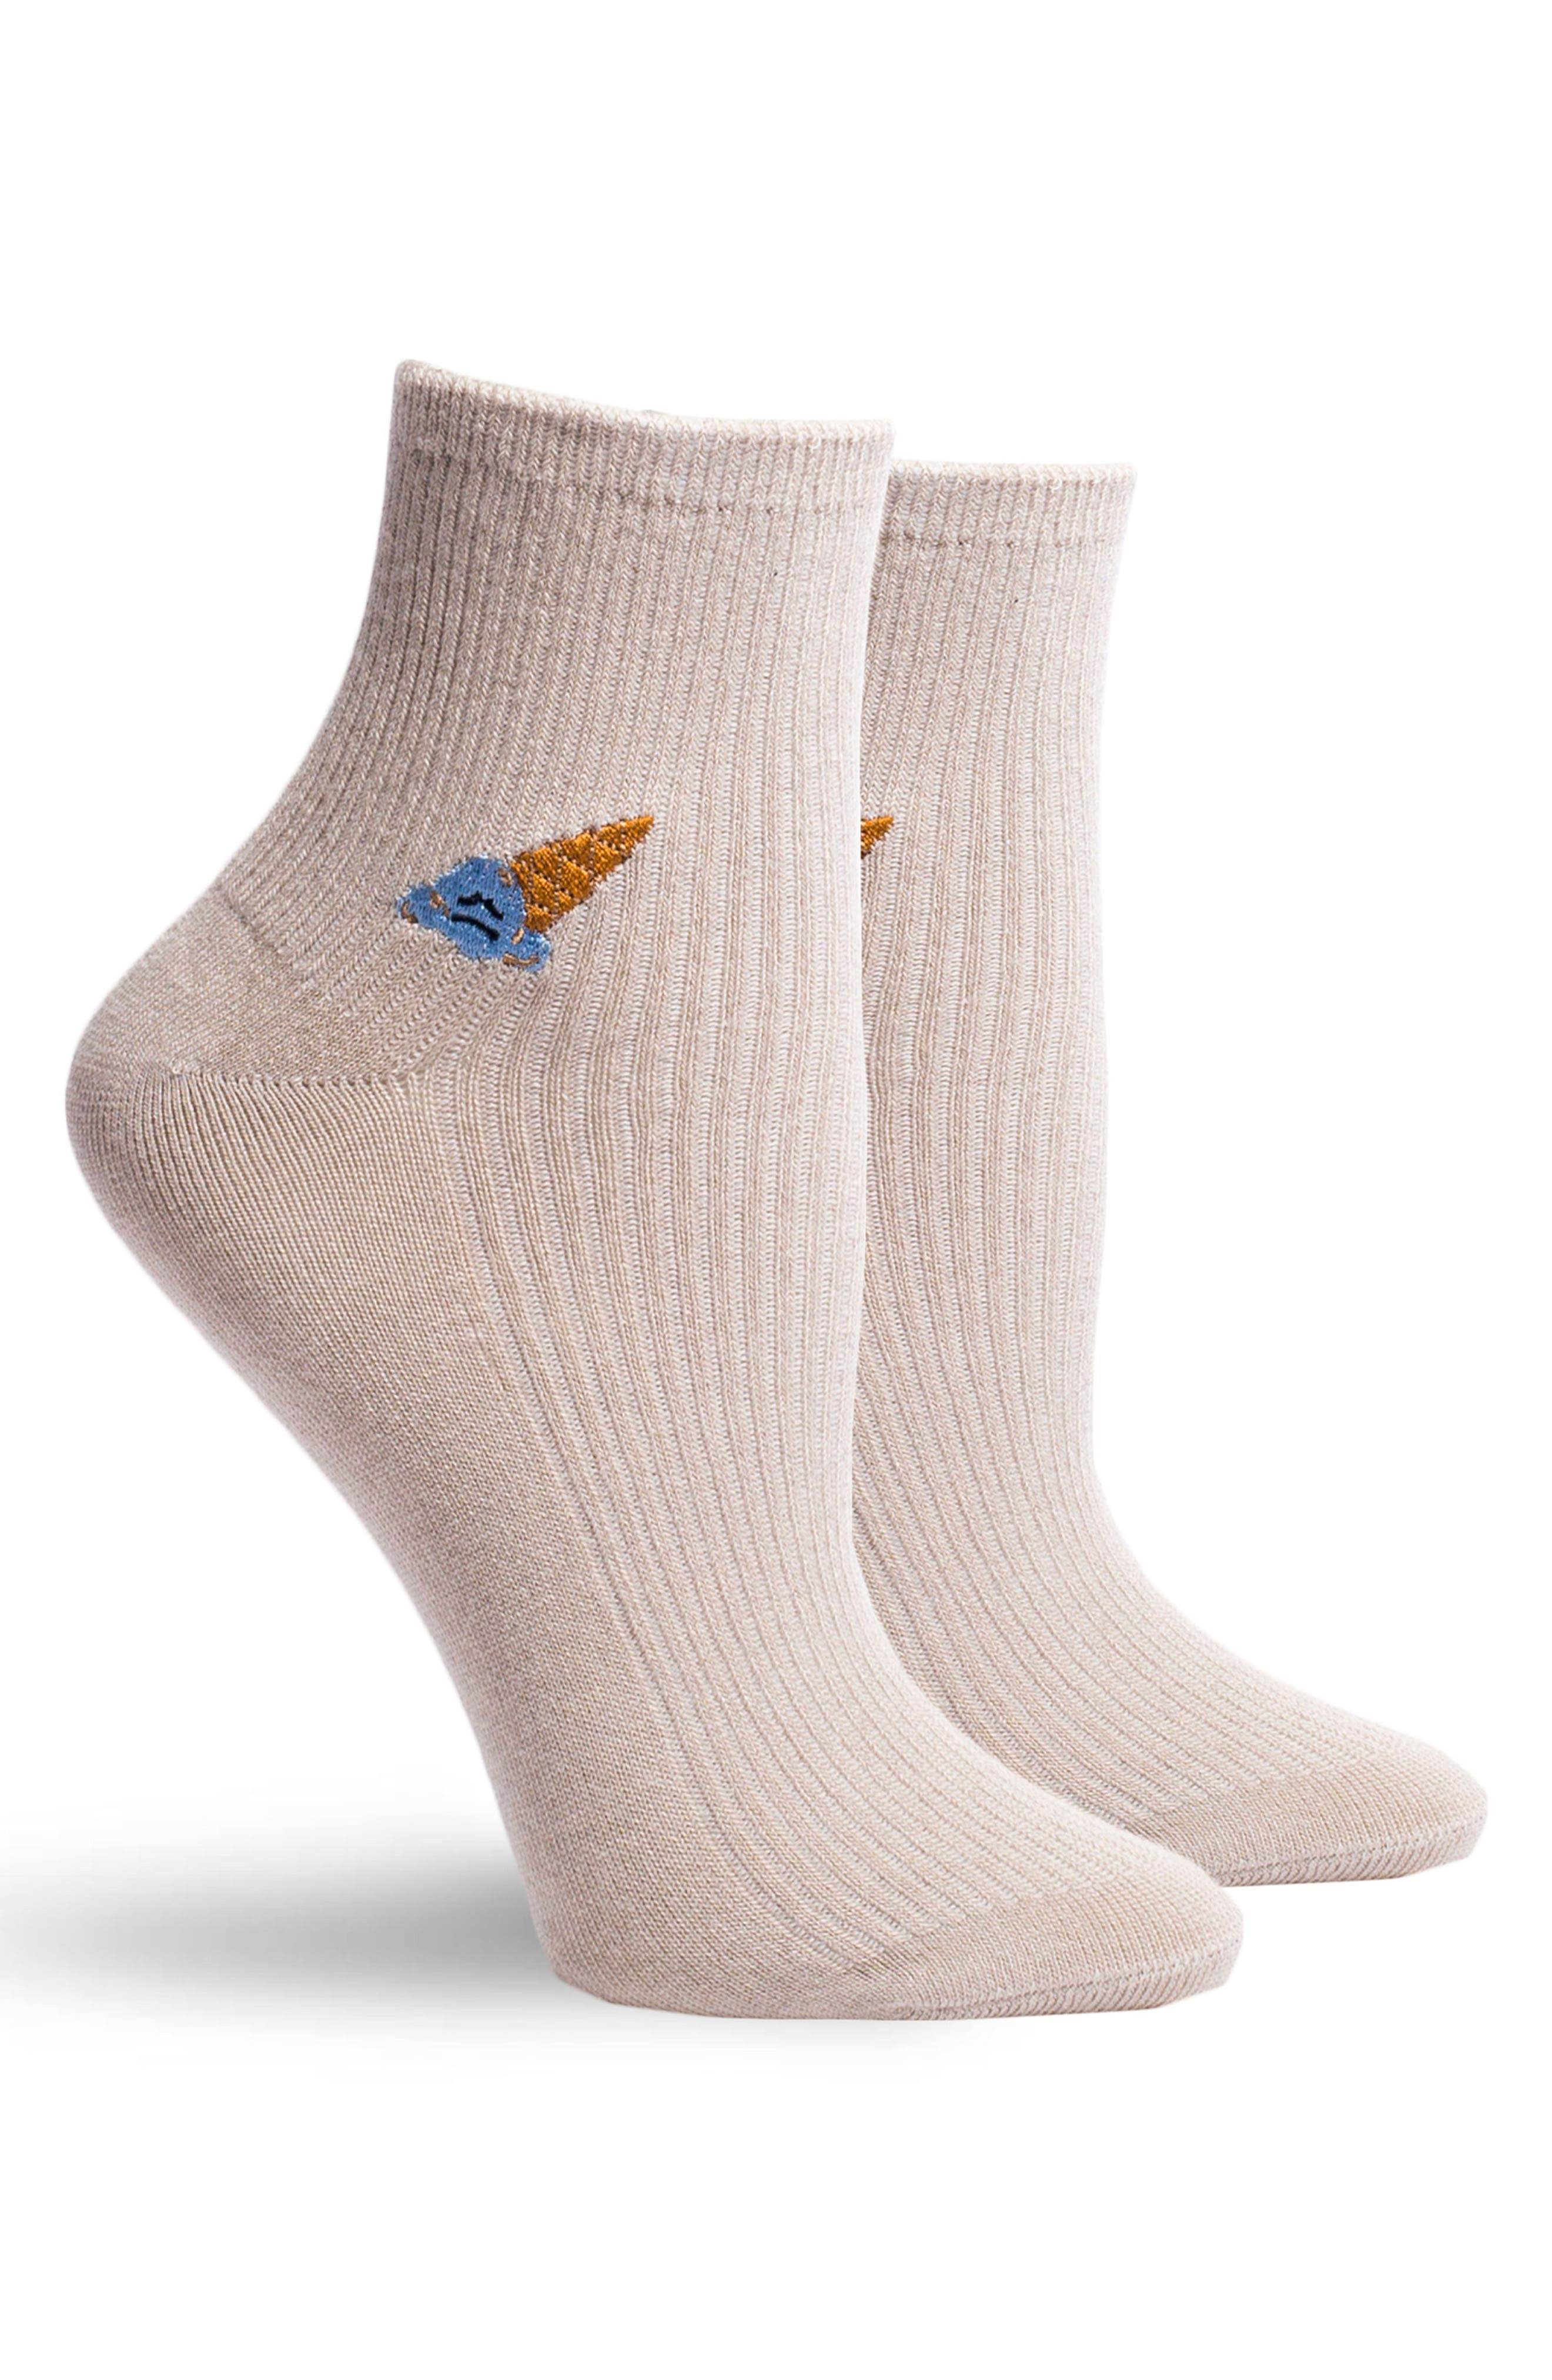 Coney Ankle Socks,                             Alternate thumbnail 2, color,                             250